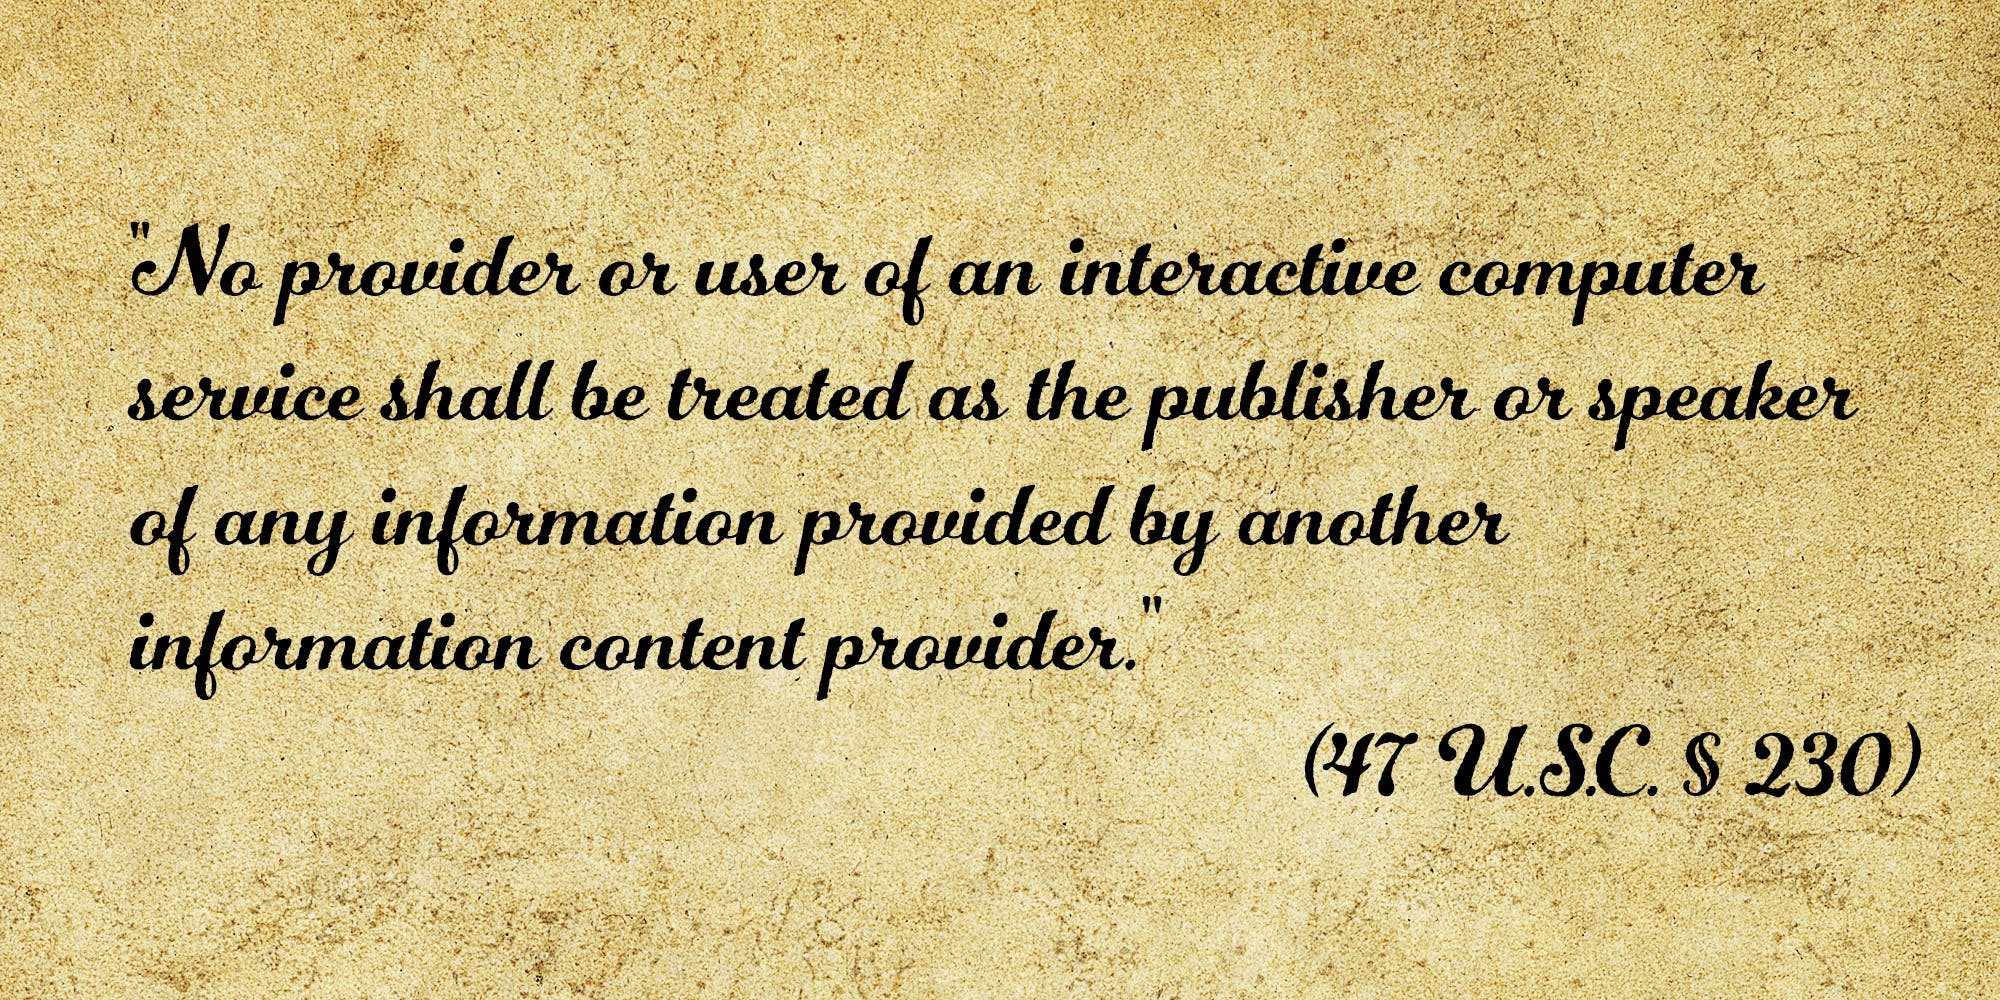 No provider or user of an interactive computer service shall be treated as the publisher or speaker of any information provided by another information content provider